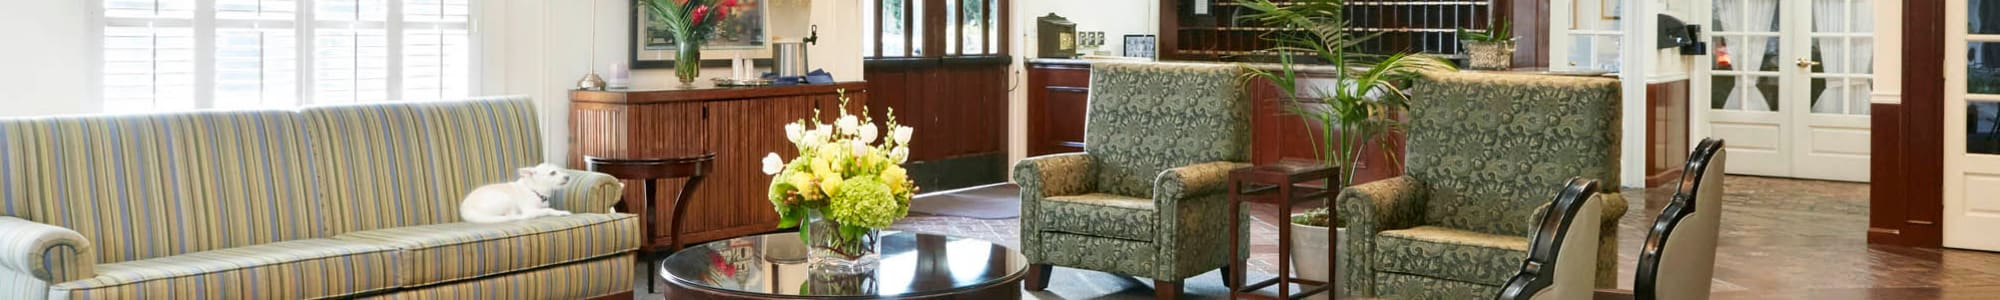 Short term care services at Regency Park Oak Knoll